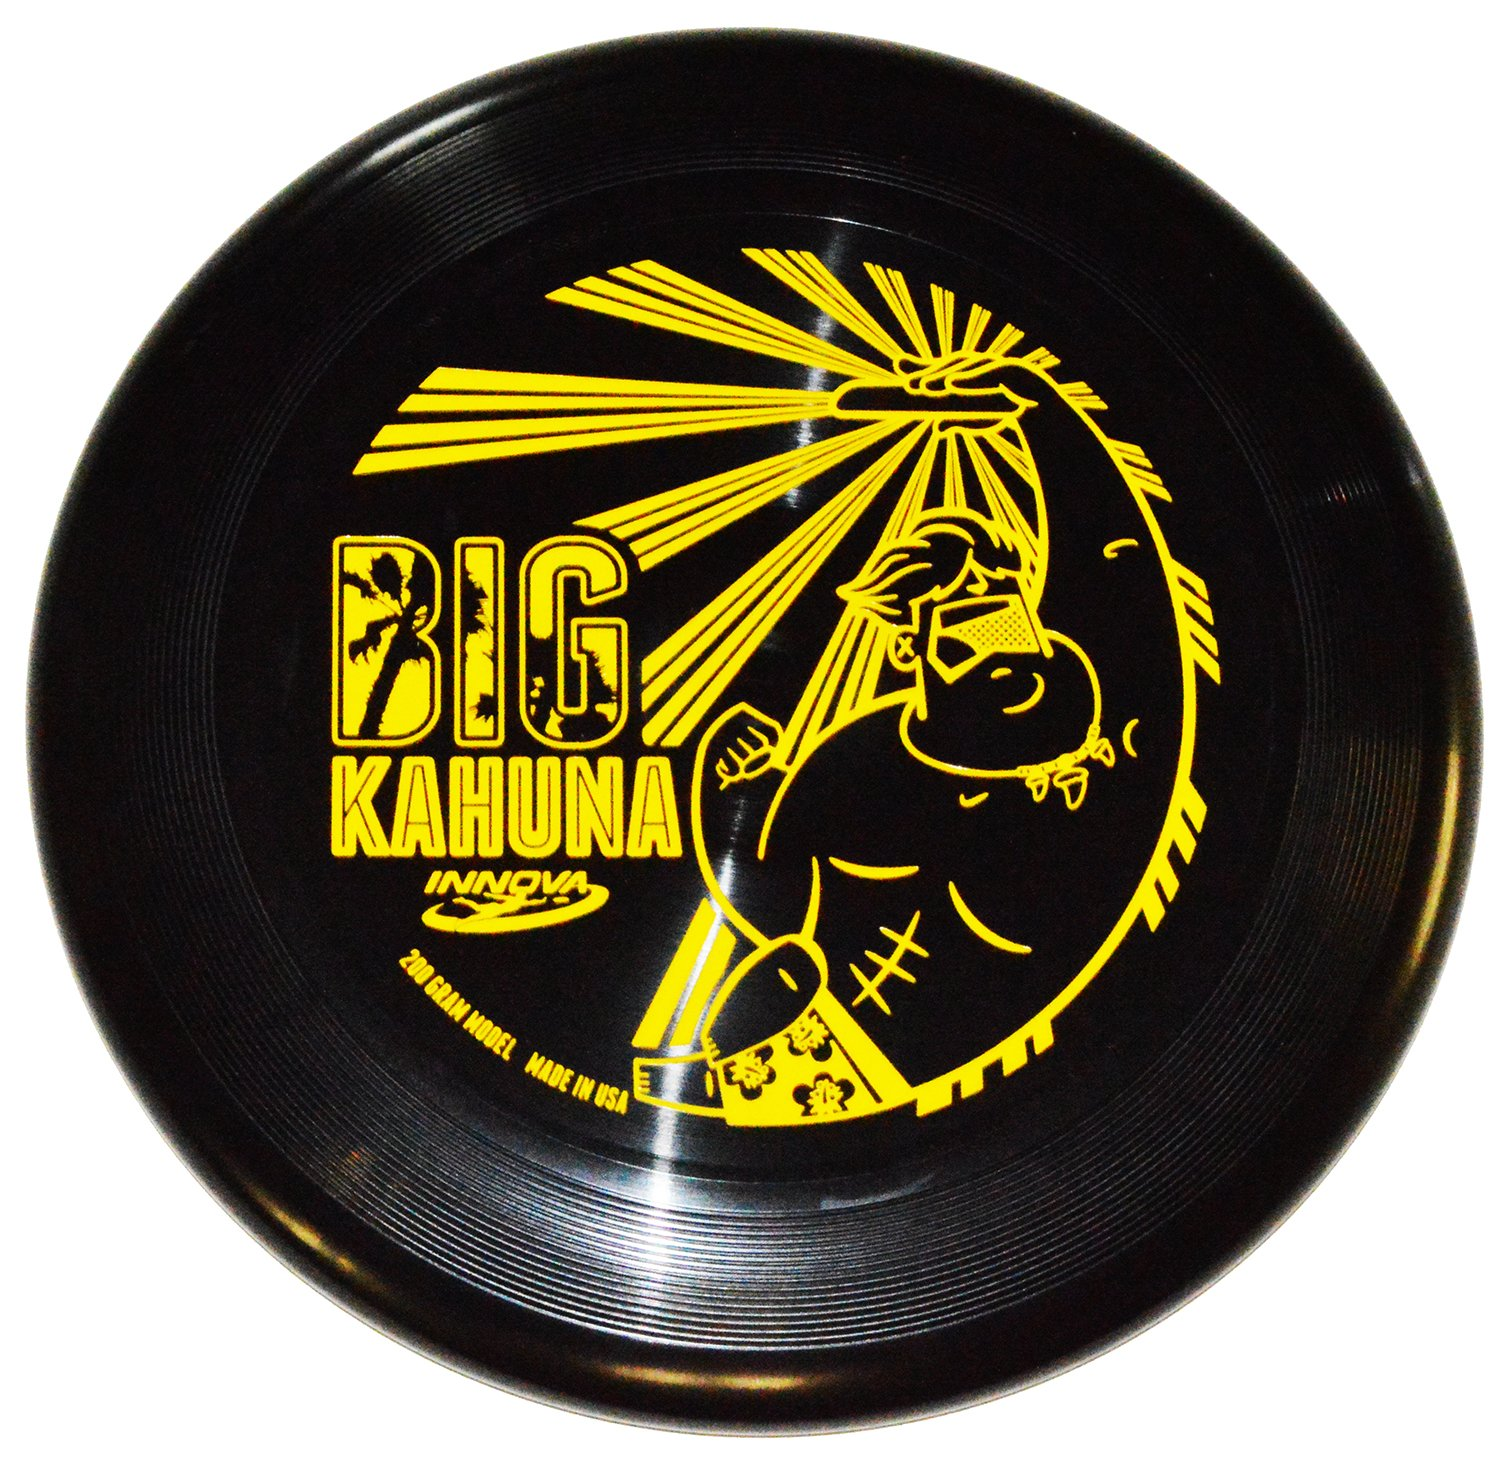 Innova Big Kahuna 200g Ultimate Catch Disc (Dude - Black) by Innova